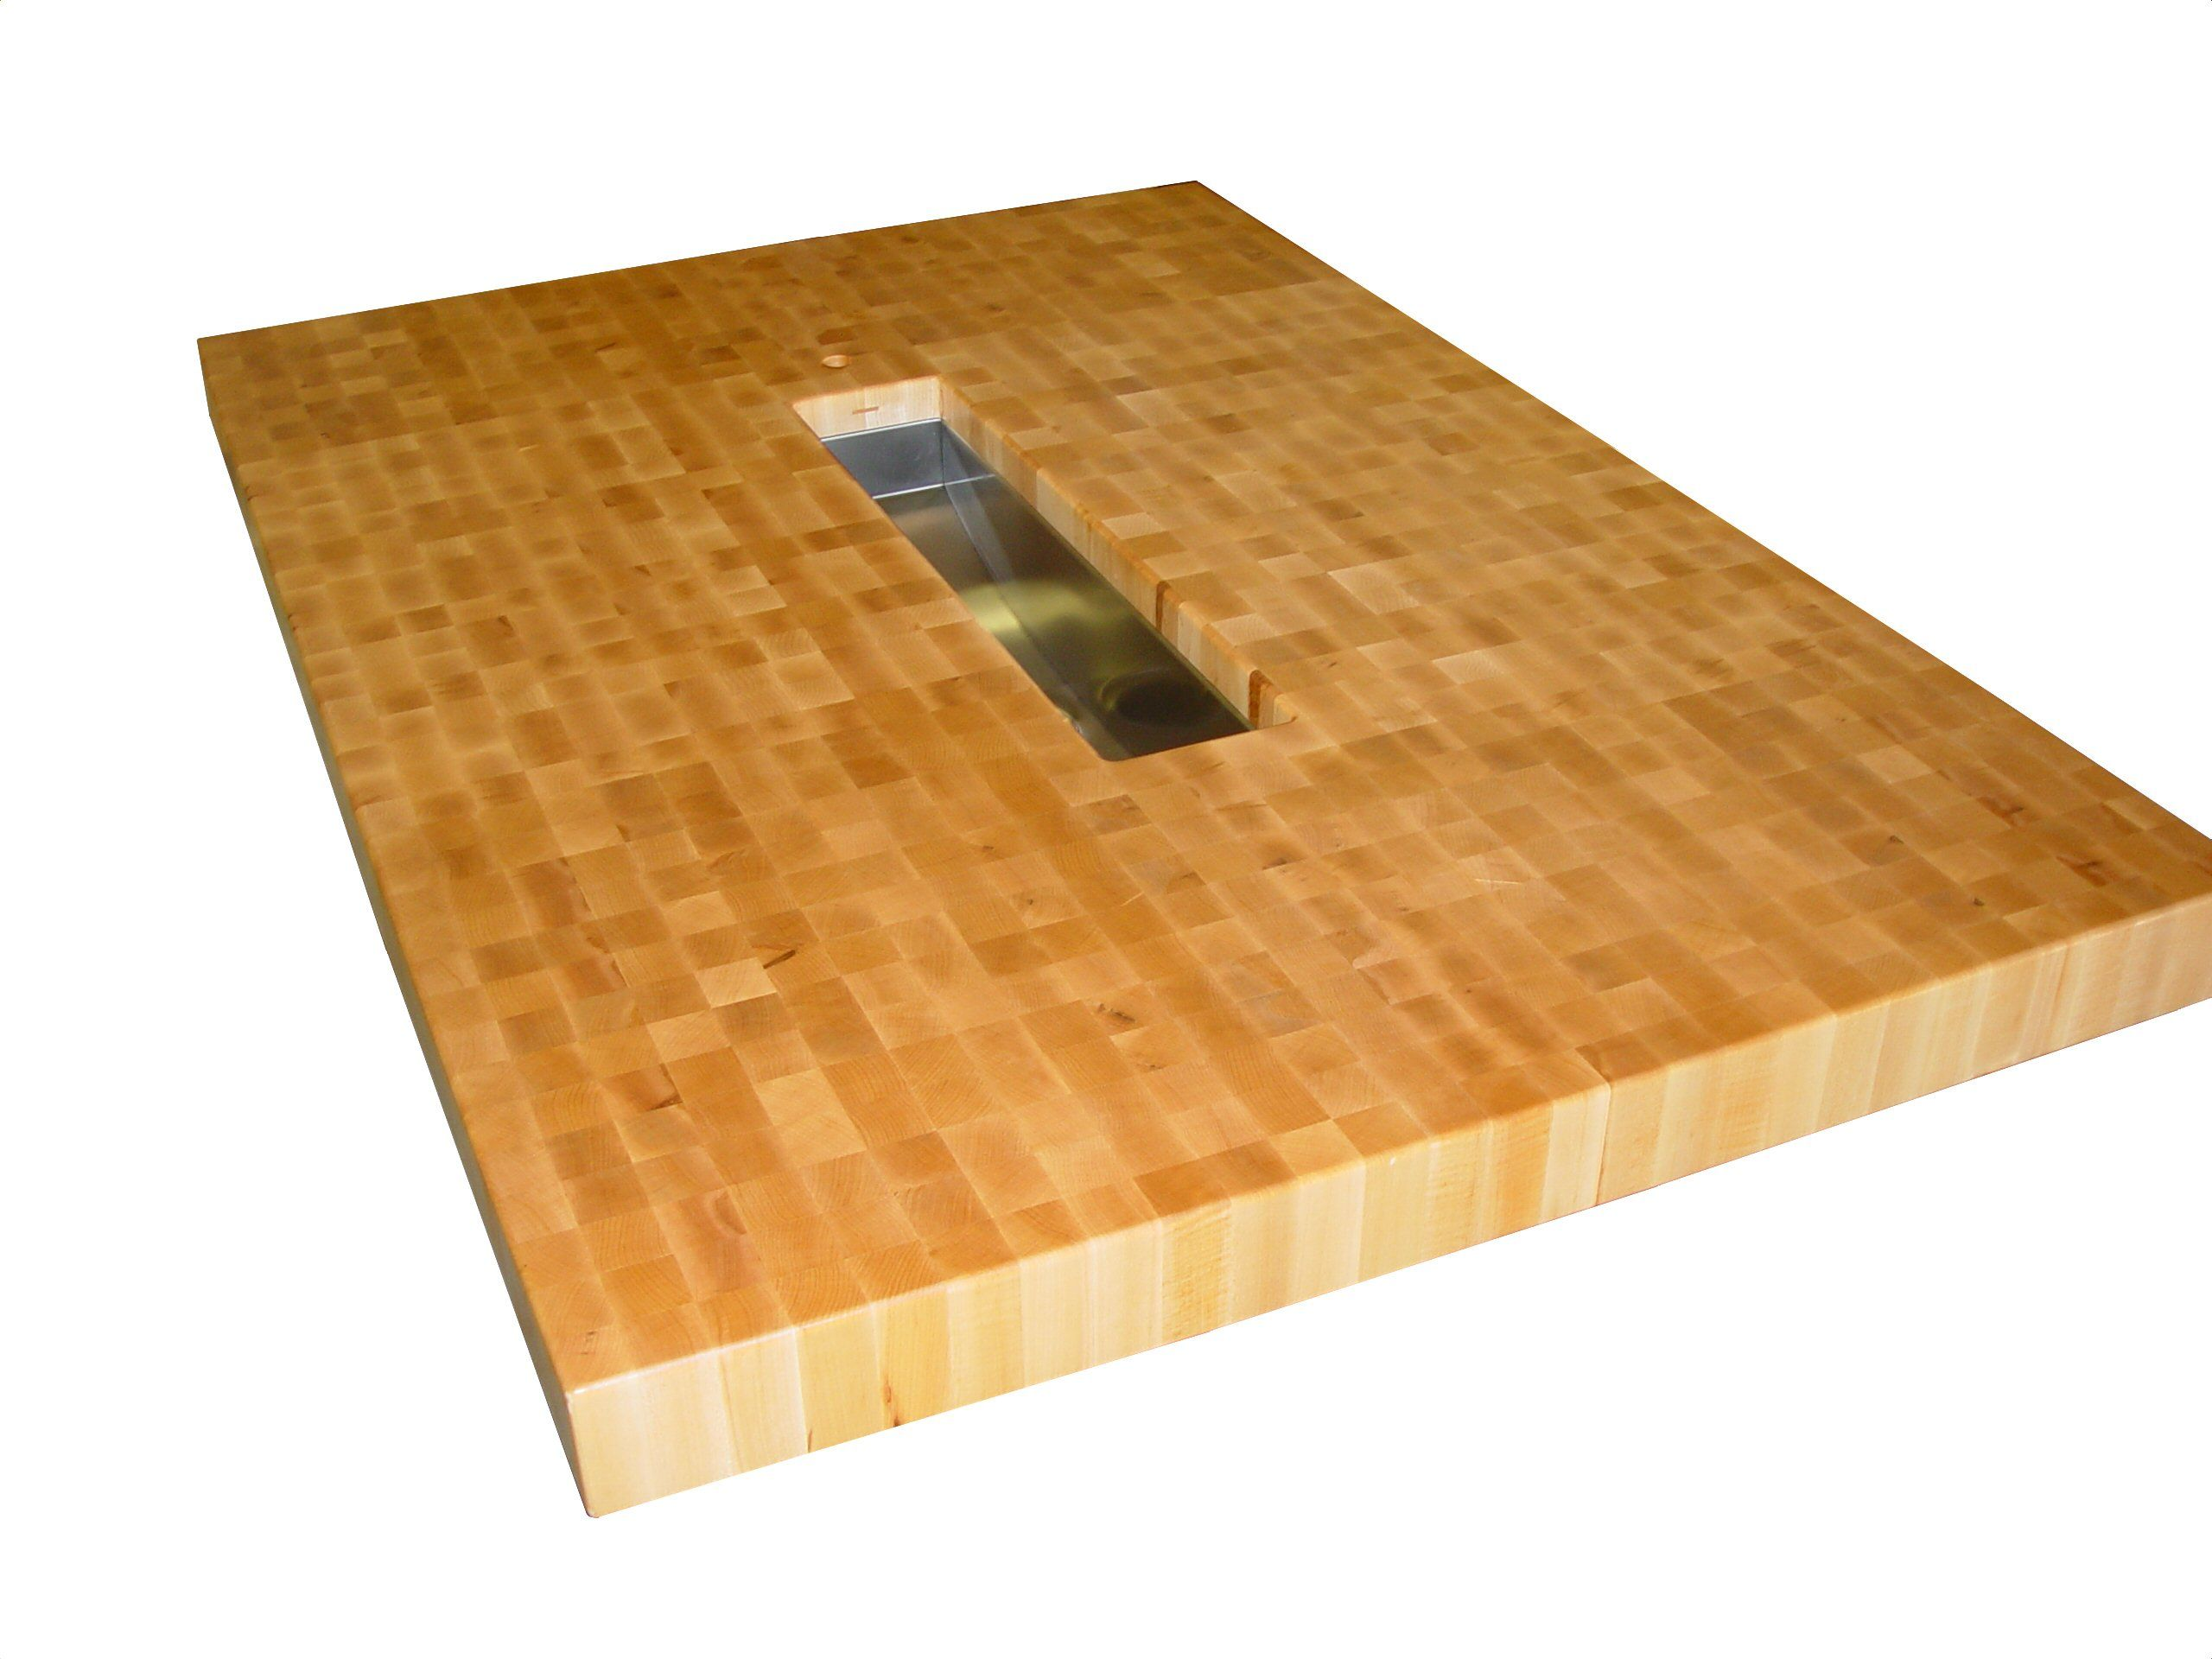 Tung Oil For Butcher Block Countertops Sink Cutouts In Custom Wood Countertops